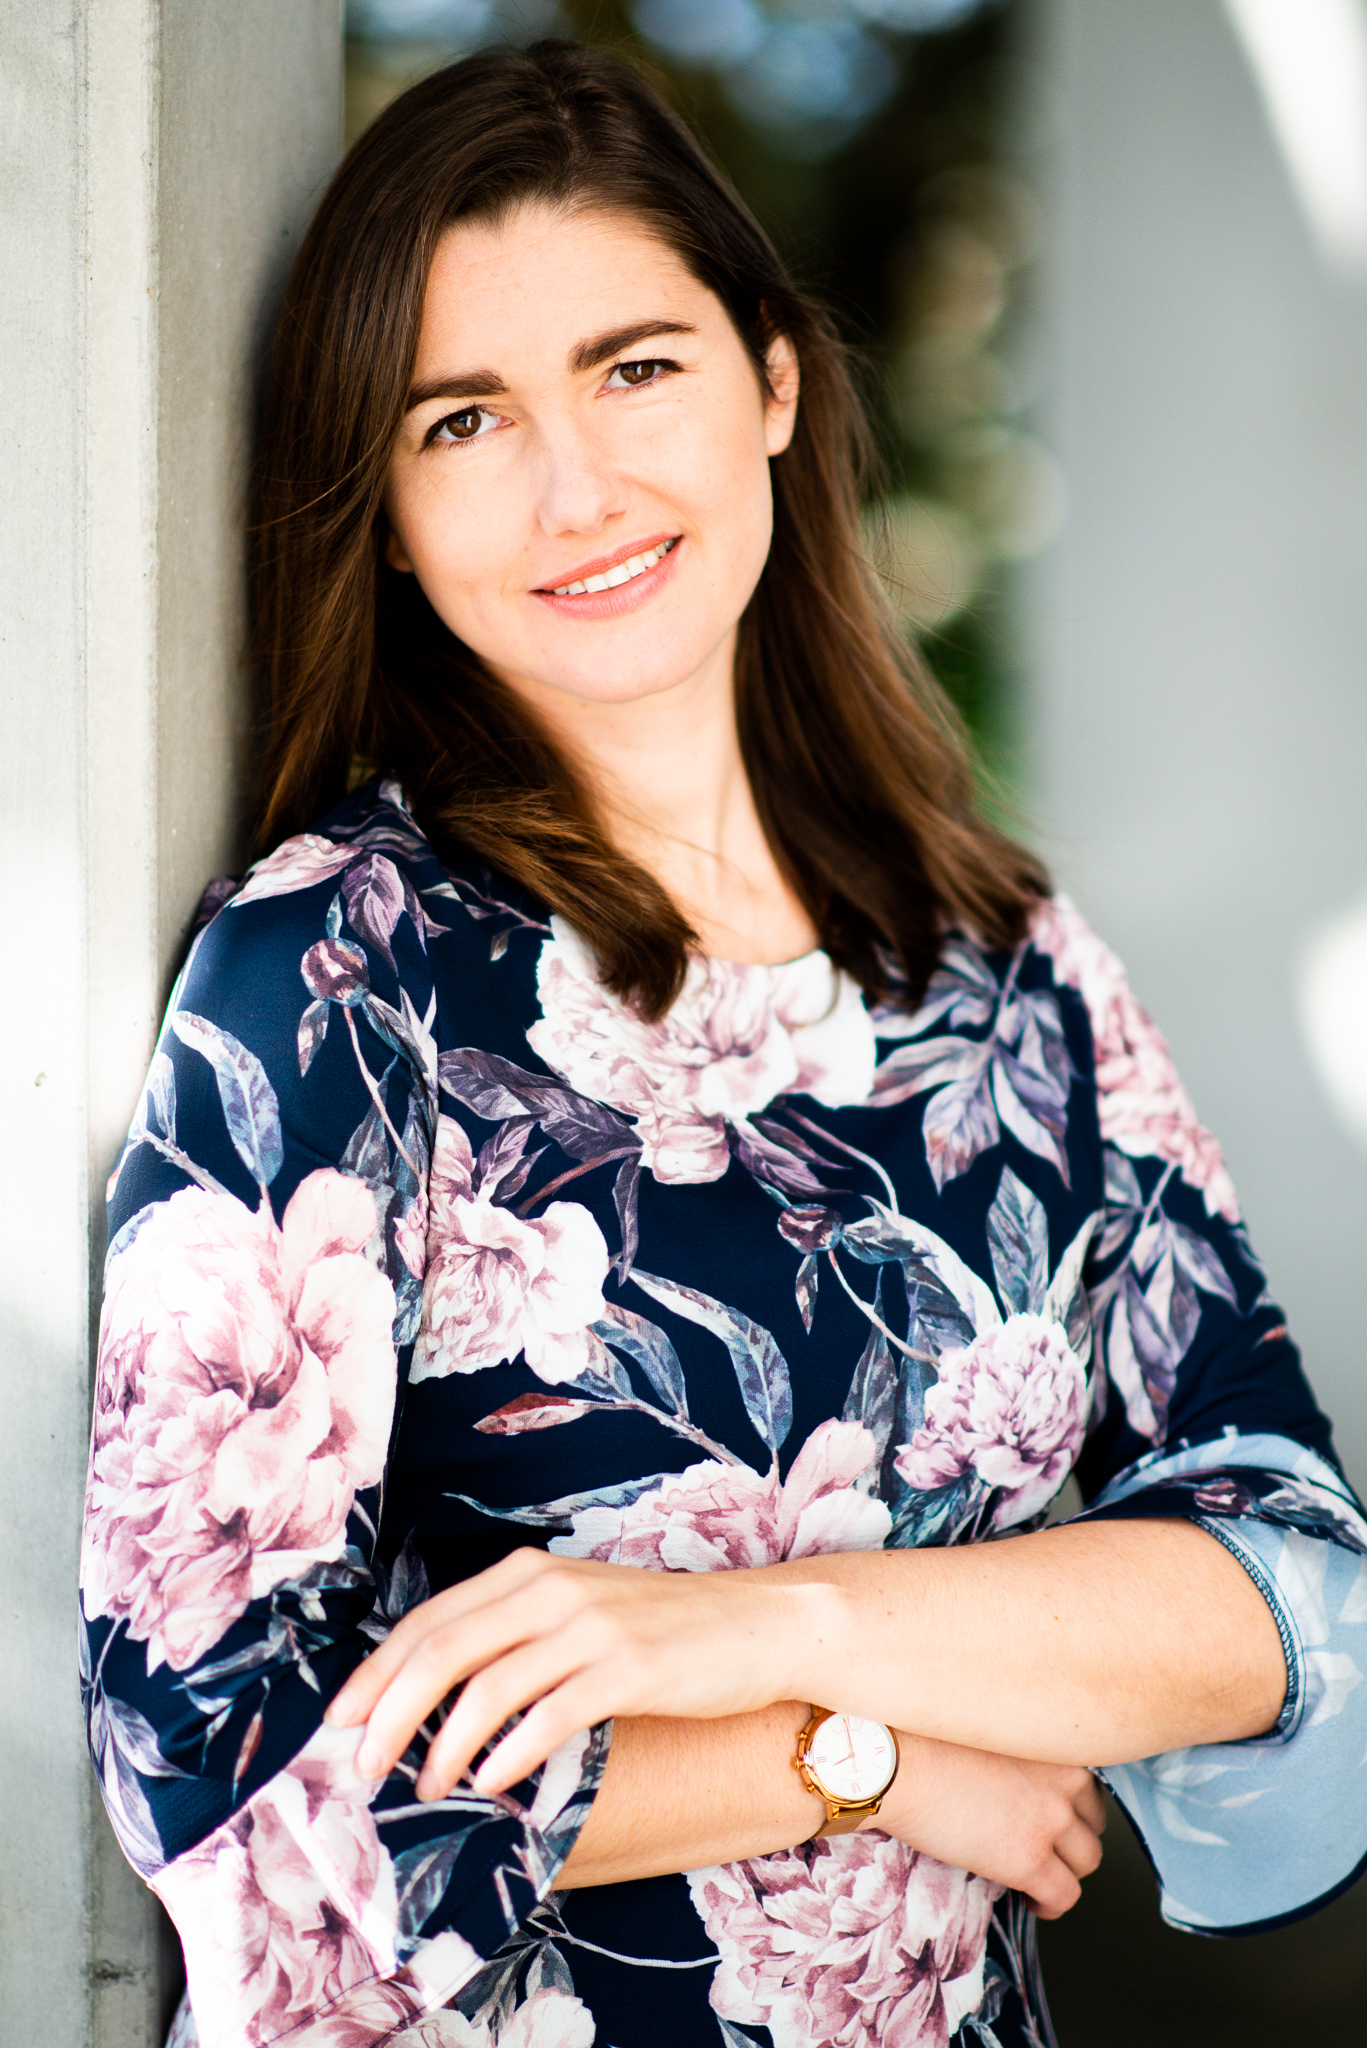 Auckland Brand Photographer Headshot Personal Brand and commercial photography